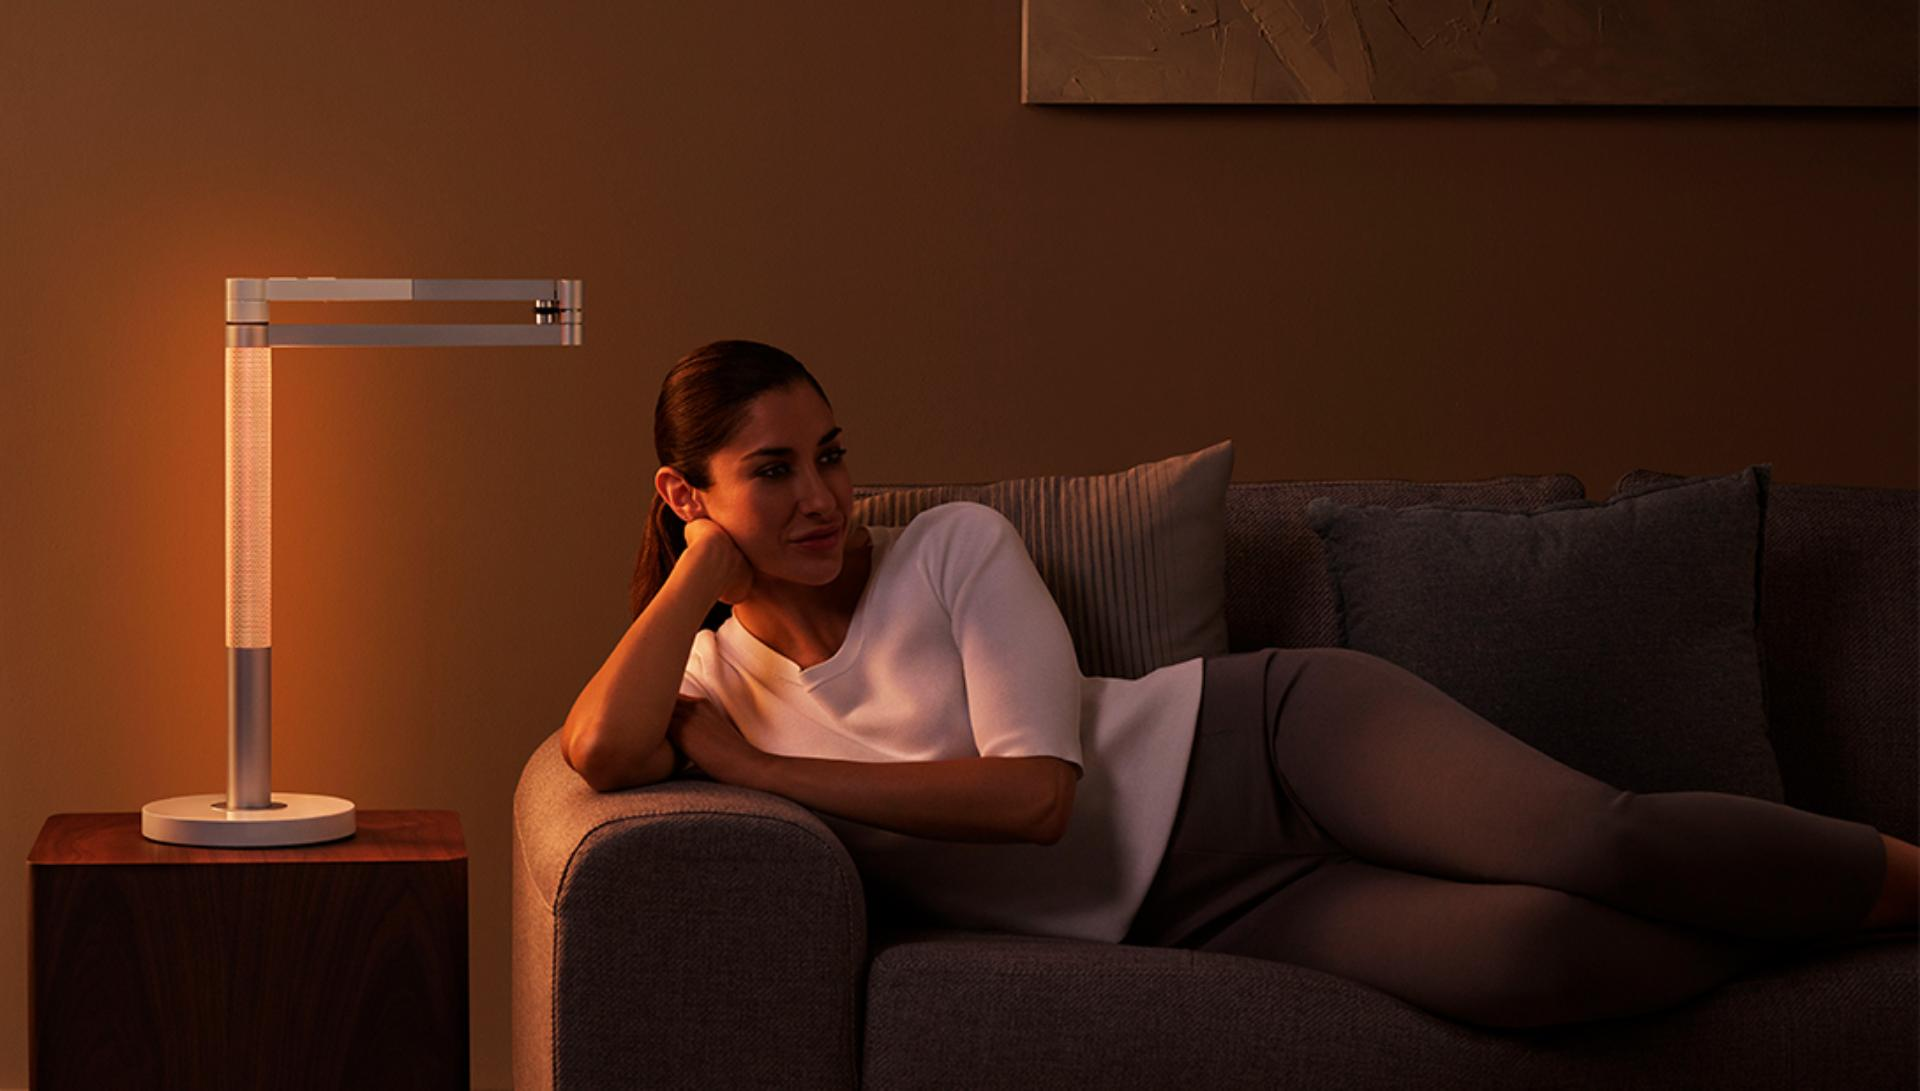 Woman relaxing with Relax mode